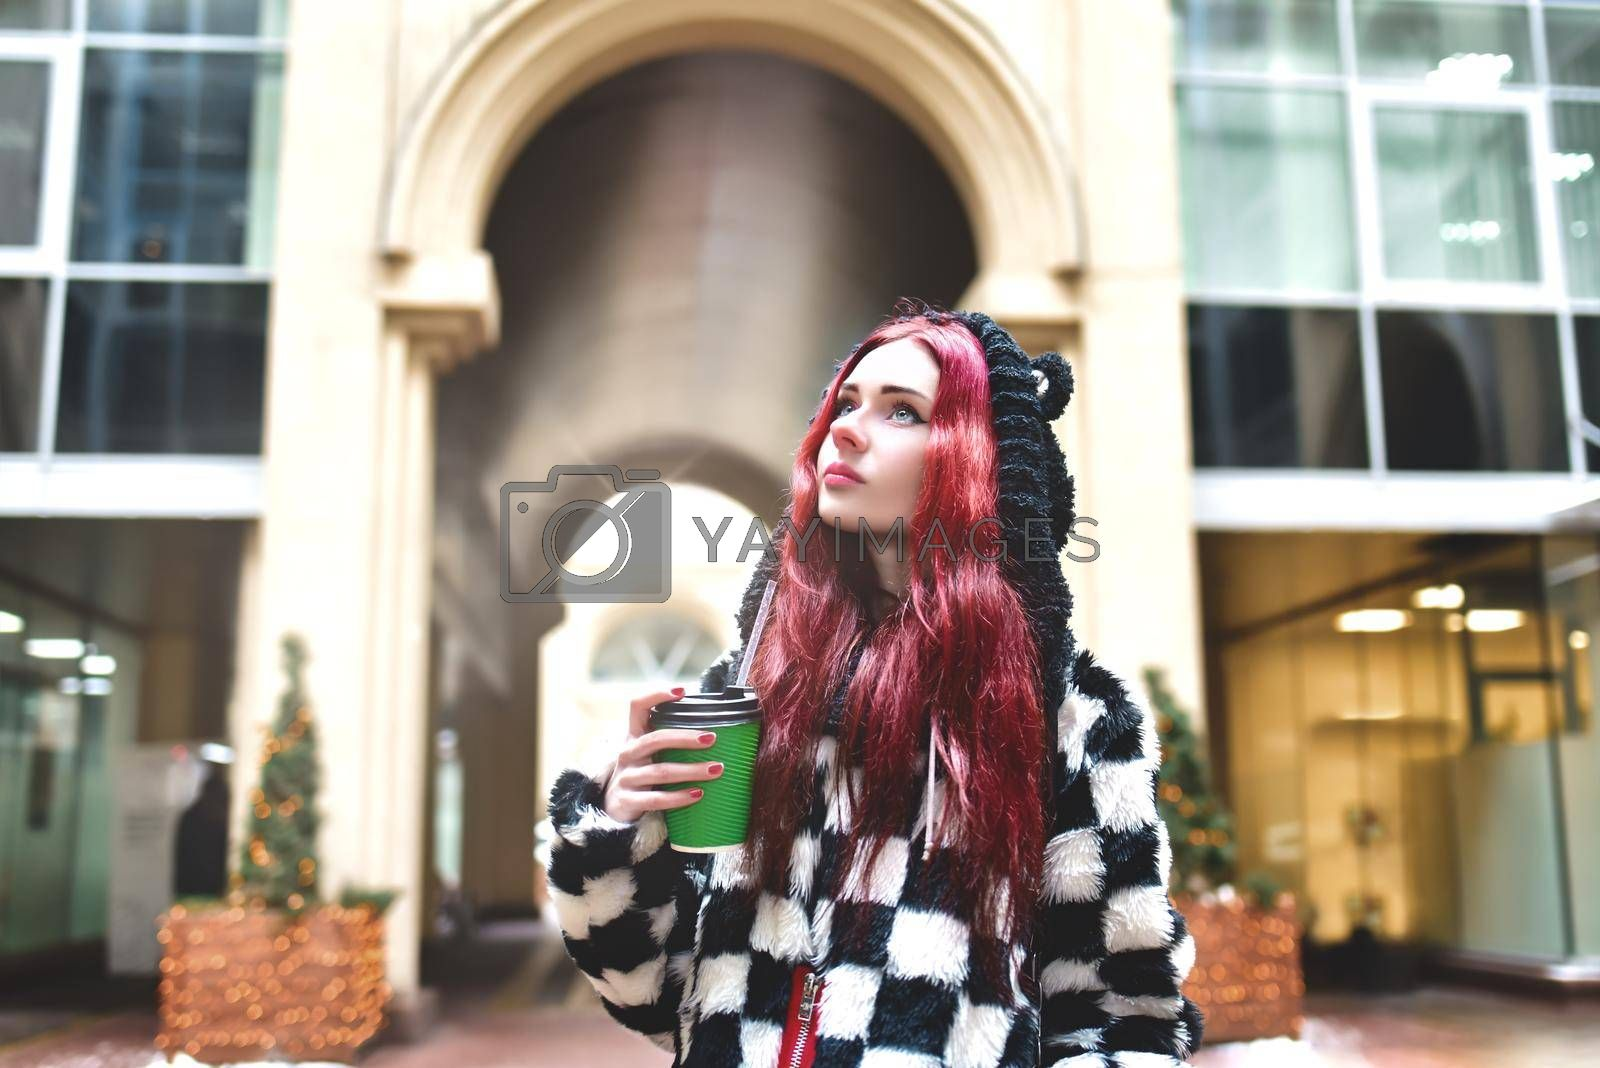 Near portrait of a teen girl with red hair in warm clothes standing outside on a cold day with a cup of coffee in her hands and looks into the camera. Cute girl walking with coffee in her hands and playing with own hair.